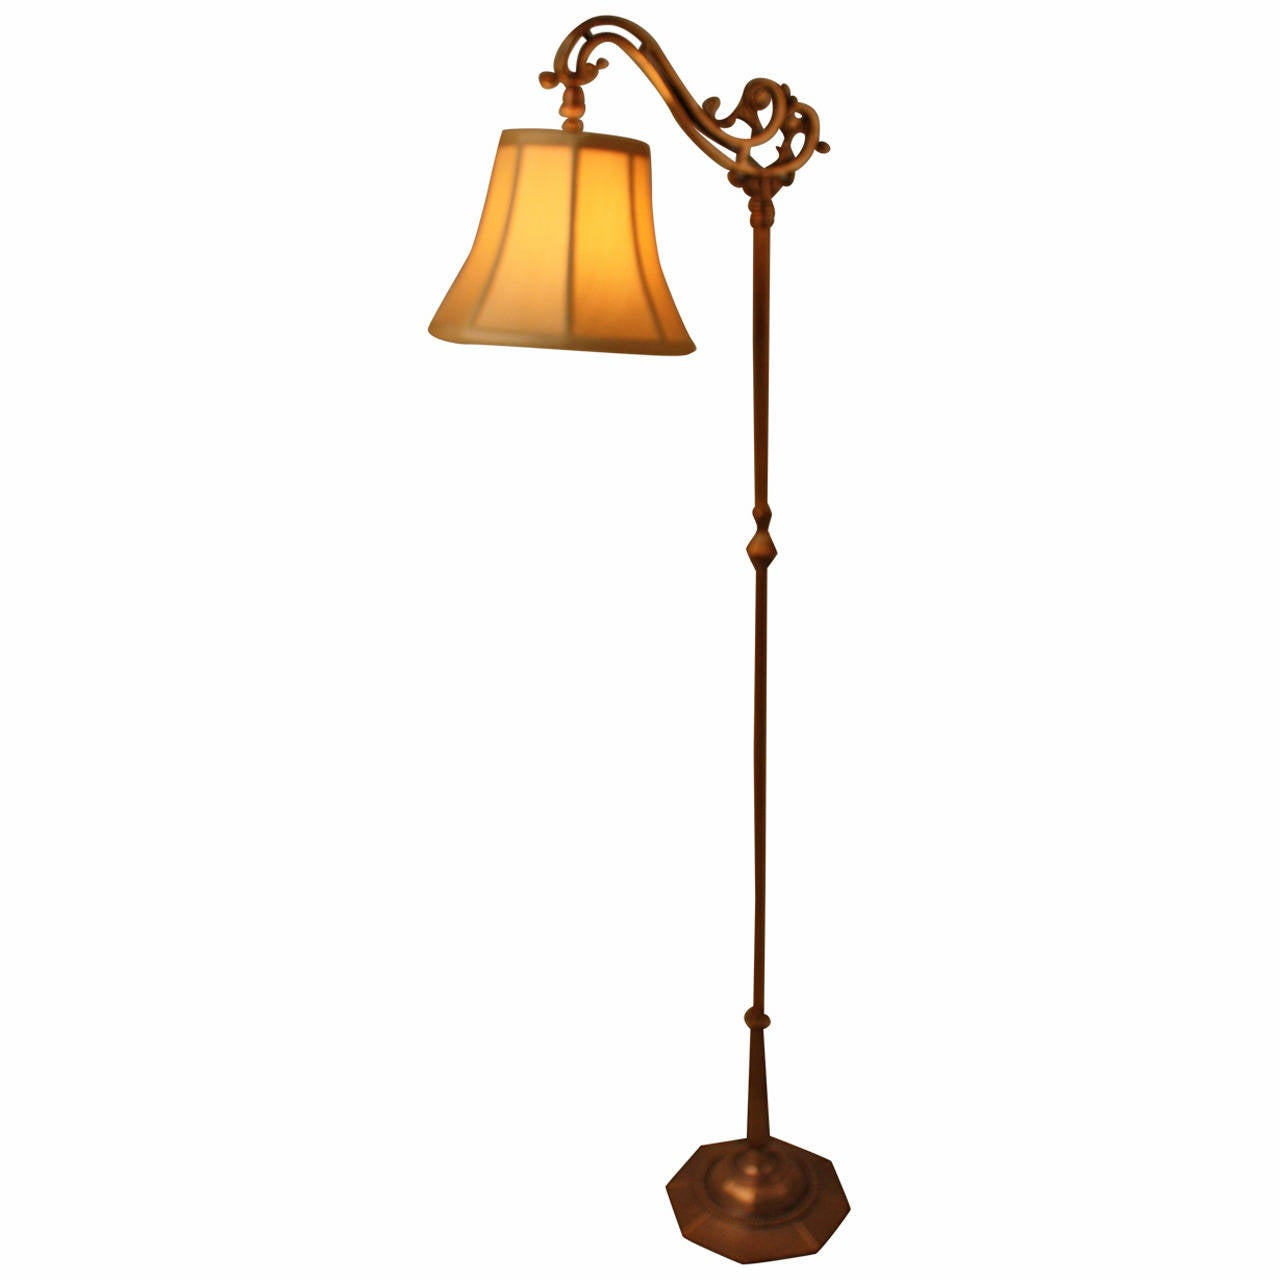 American floor lamp by rembrandt lamp company at 1stdibs american floor lamp by rembrandt lamp company for sale aloadofball Gallery